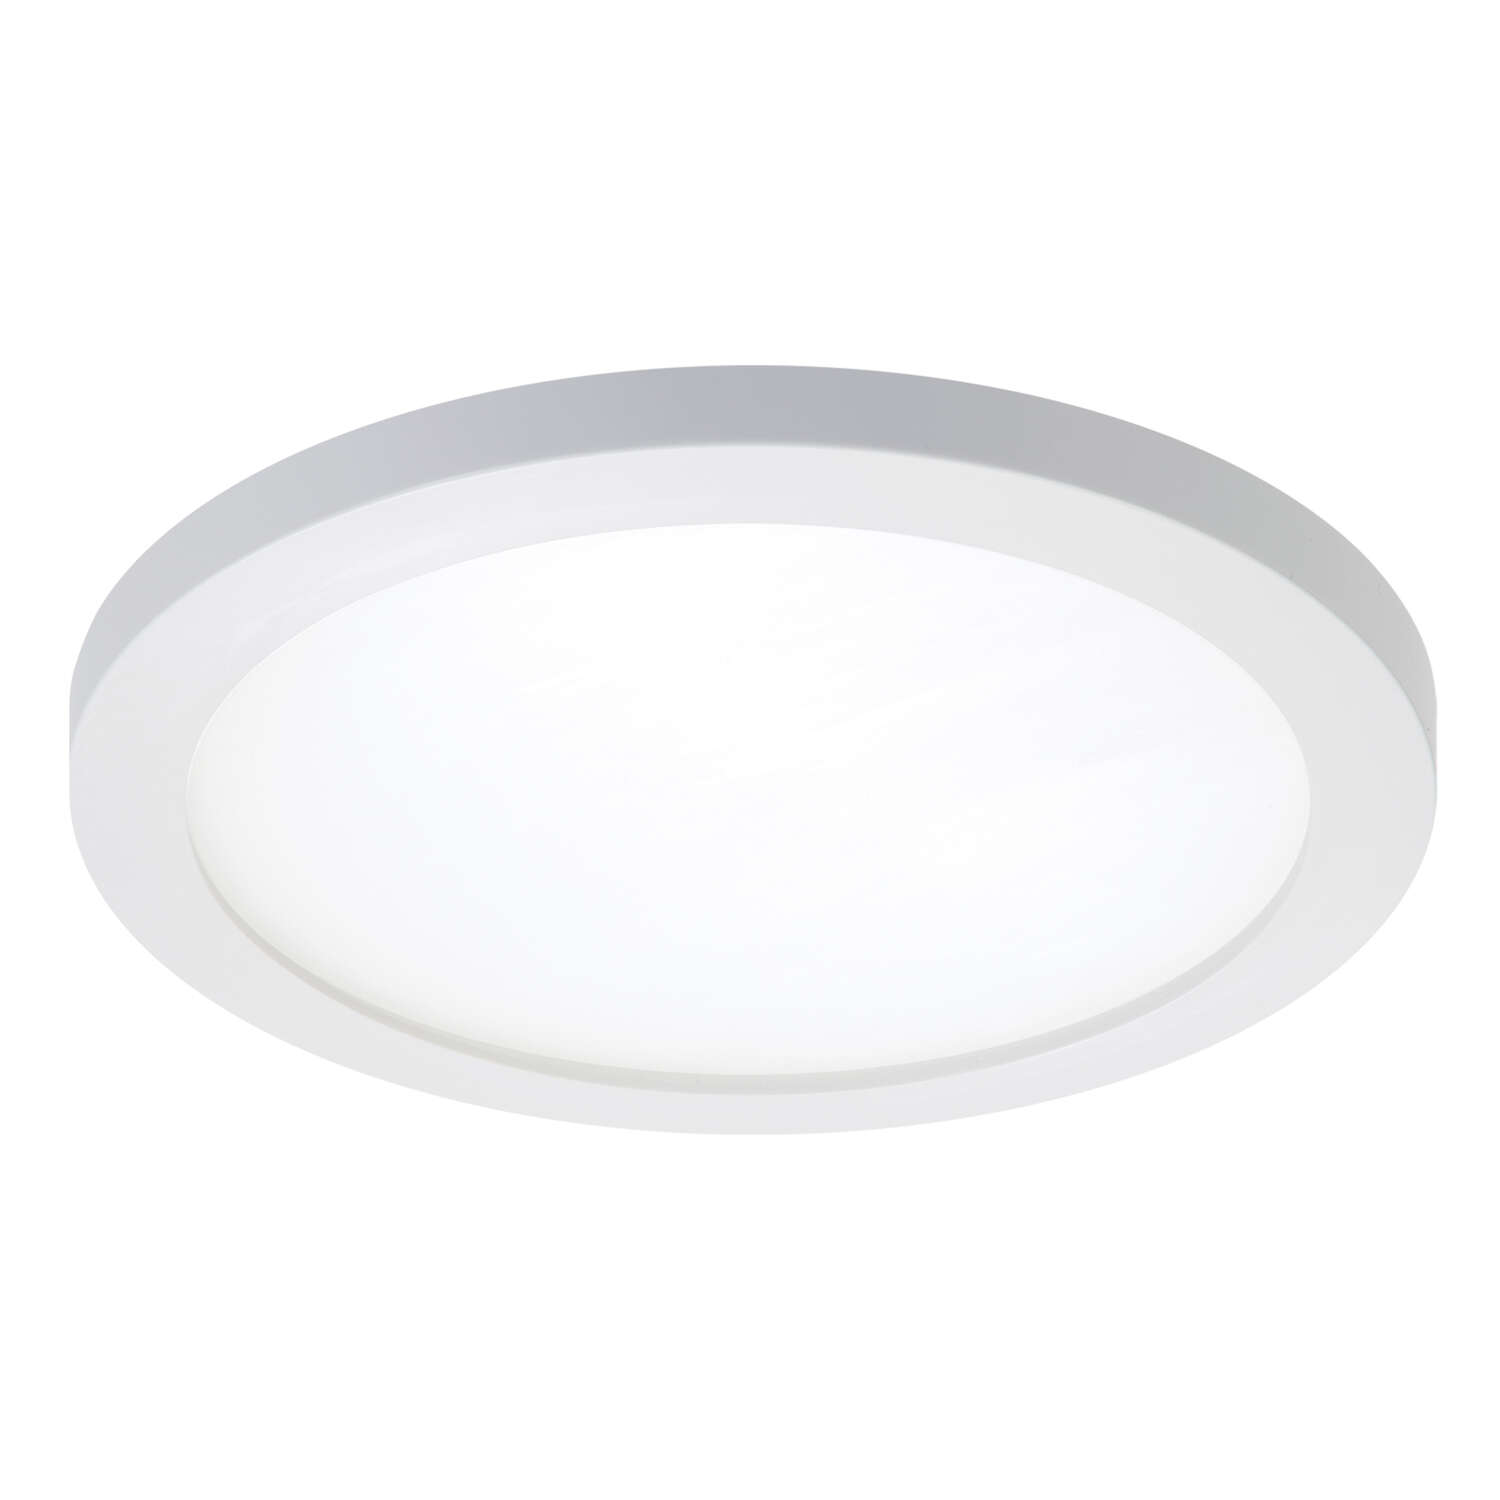 Halo White 6 in. W Plastic LED Retrofit Kit 9.6 watt